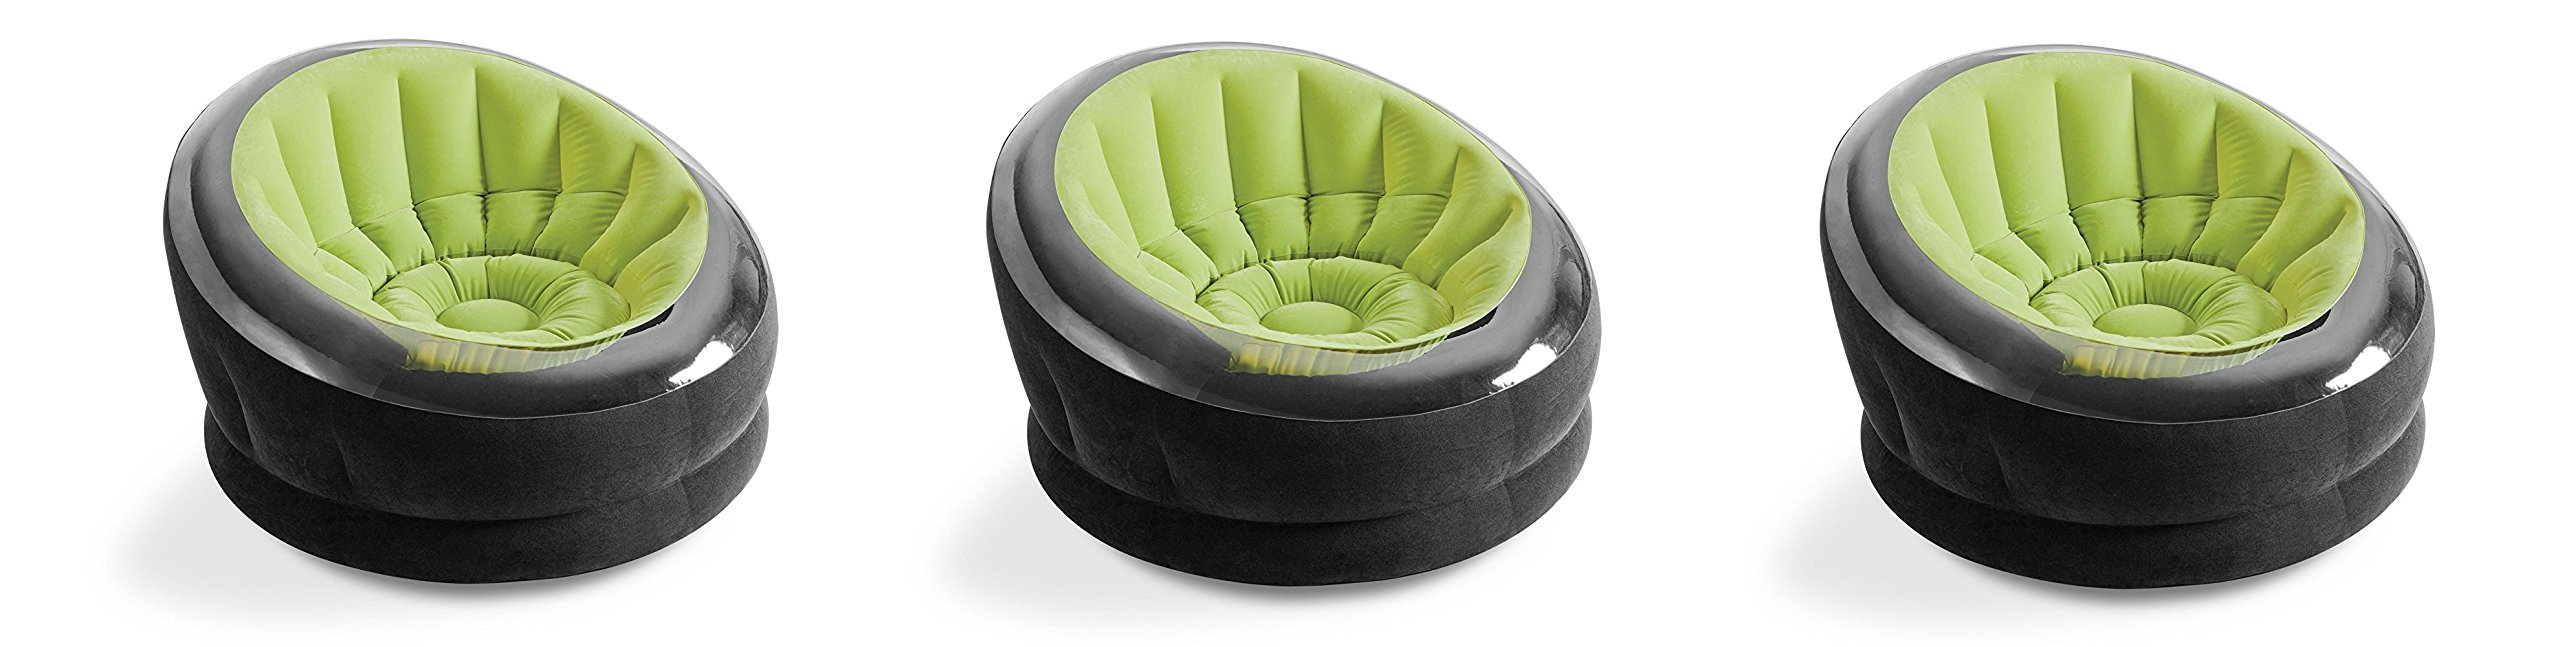 Intex Empire Inflatable Chair, 44'' X 43'' X 27'', Green (Pack of 3)